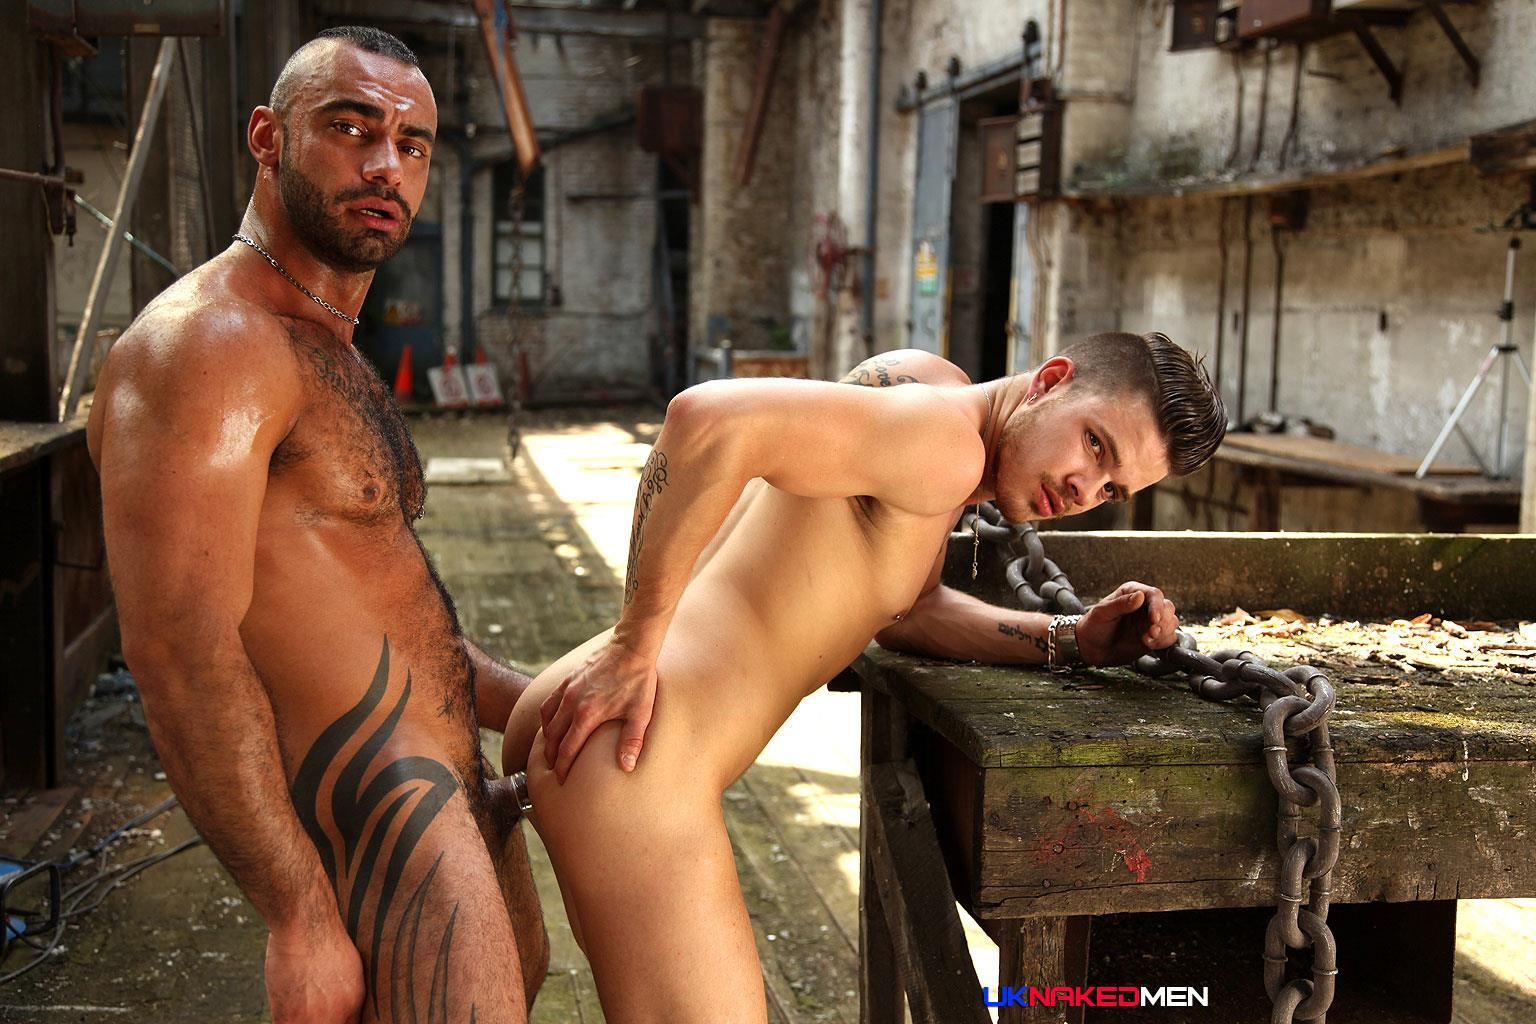 Hairy Muscle Stud Tony Thorn Fucking Smooth Muscle Hunk Fabio Lopez ...: horsecockmen.com/hairy-muscle-stud-tony-thorn-fucking-smooth-muscle...